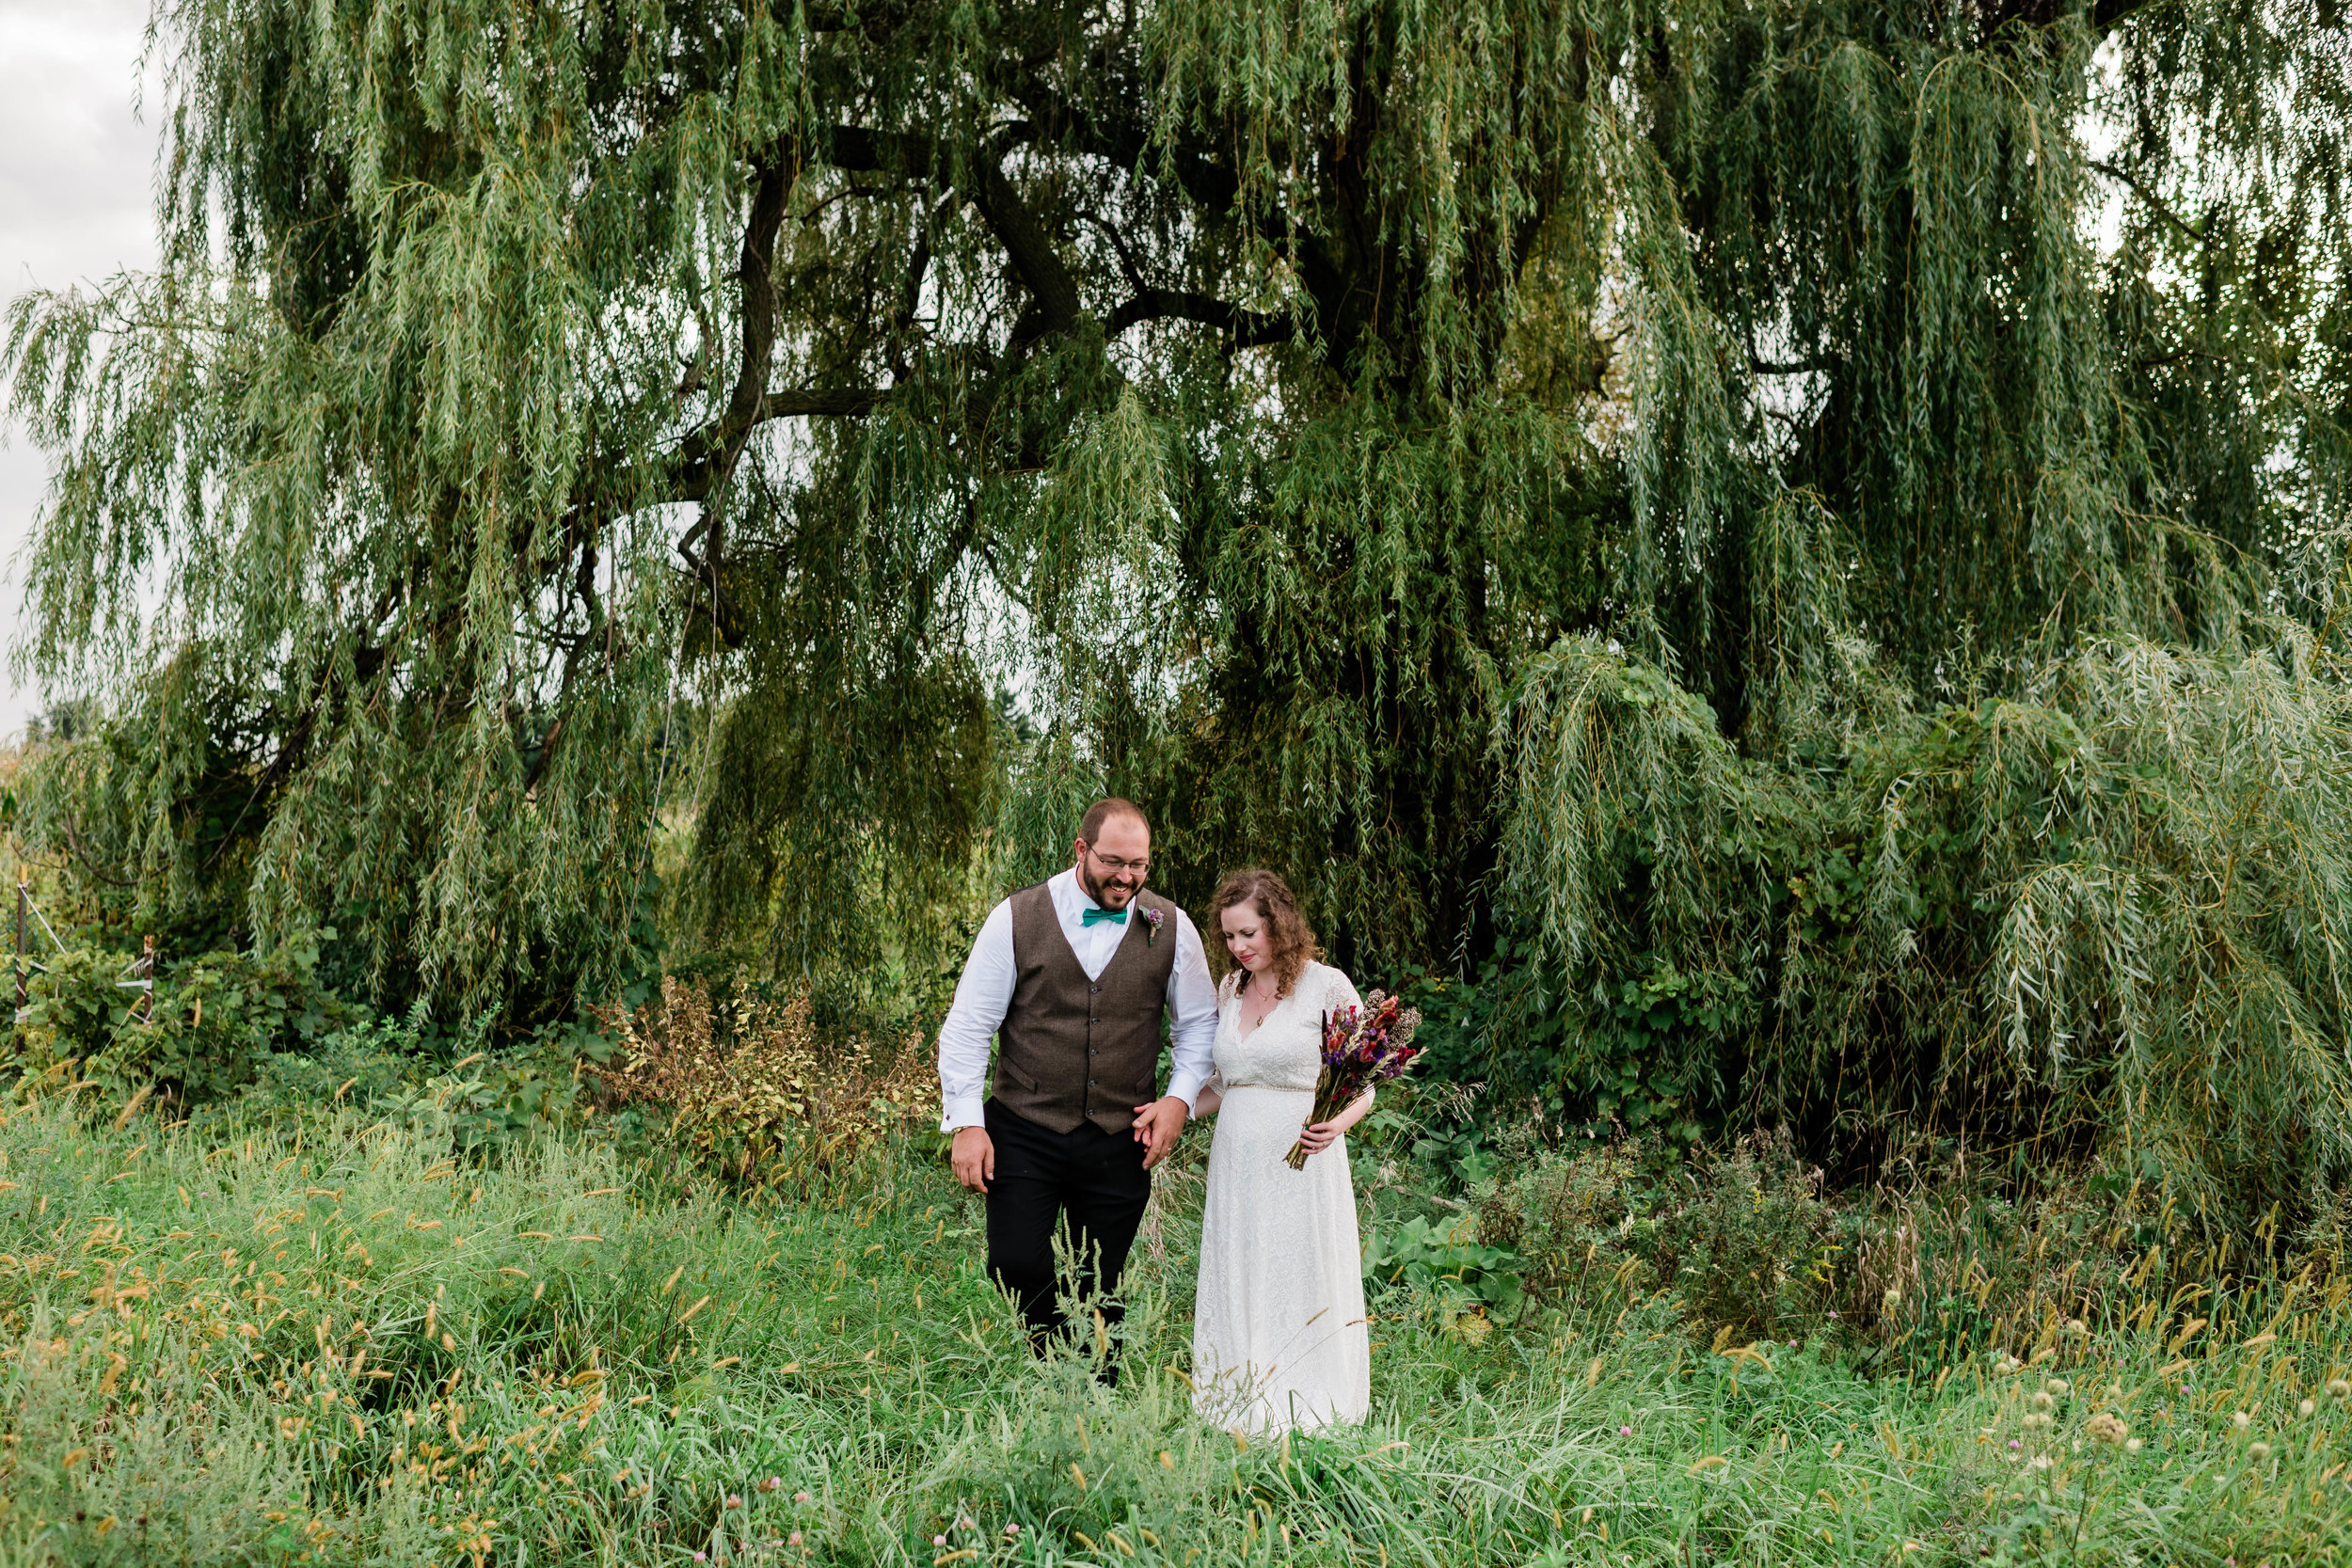 Bride and groom walk in front of a weeping willow tree